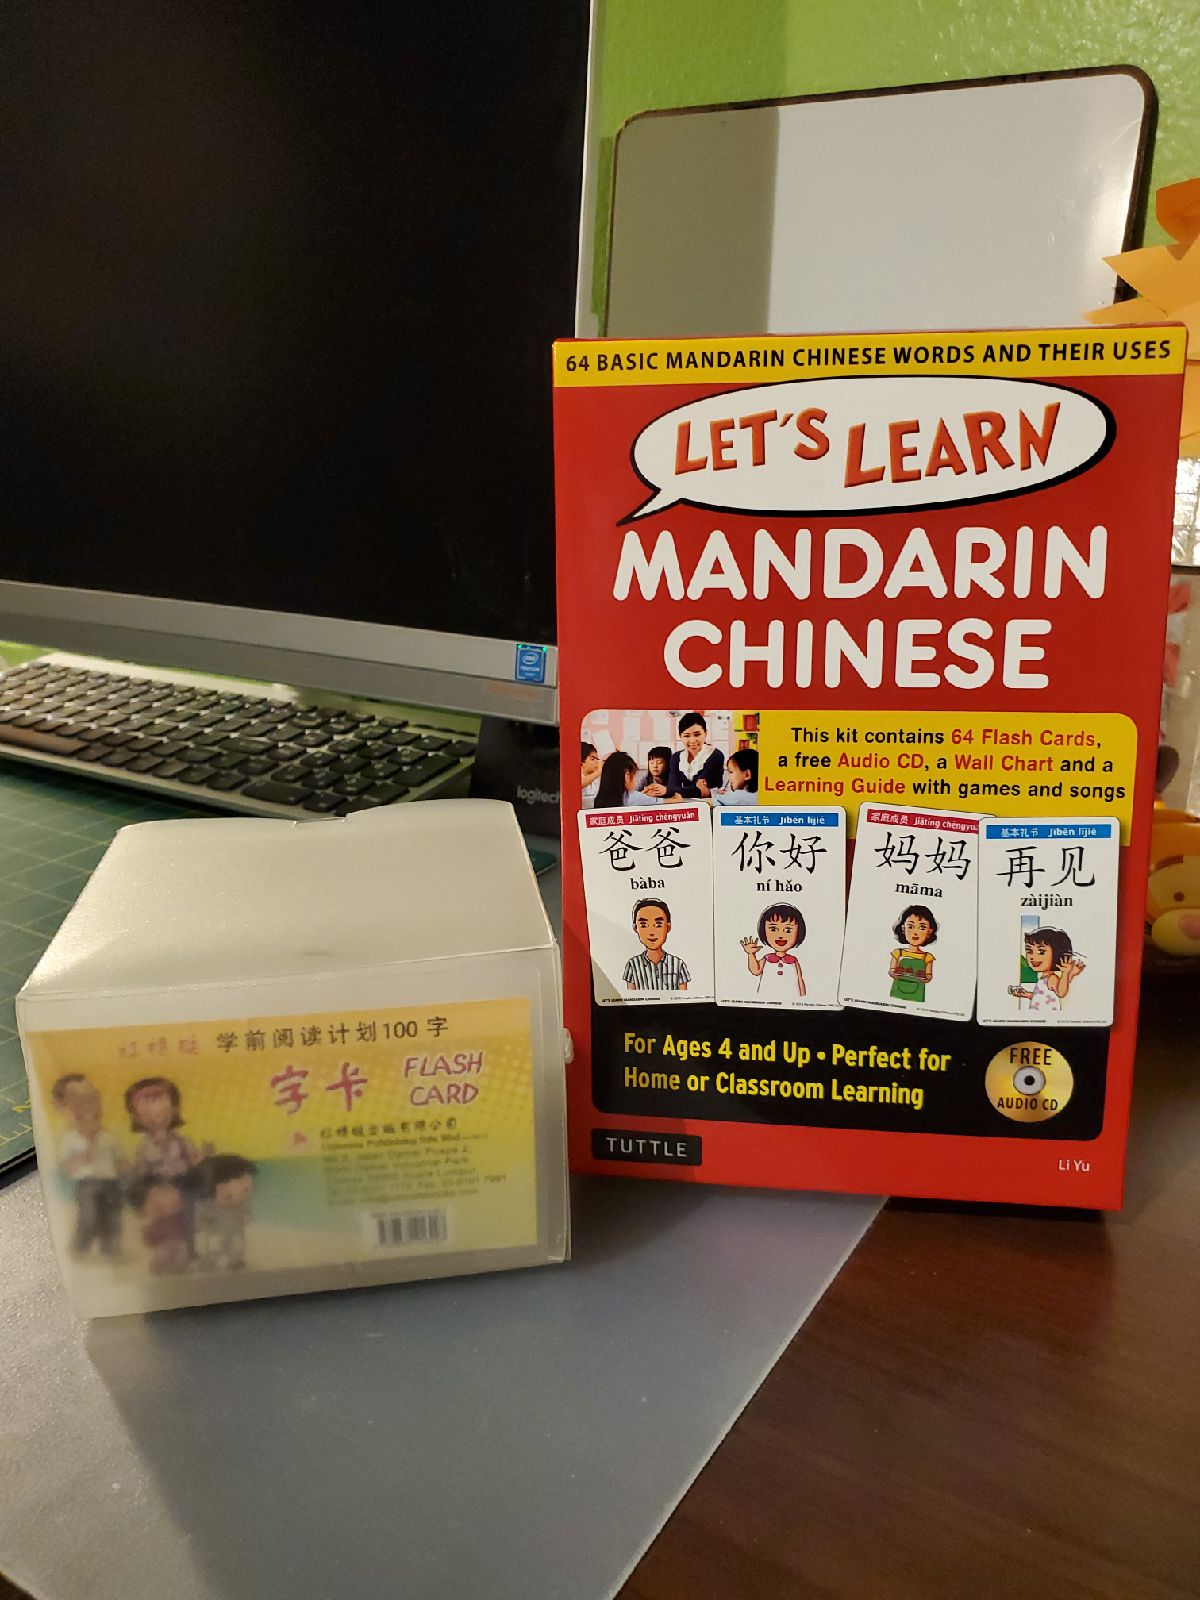 Let's Learn Mandarin Chinese and Flash C